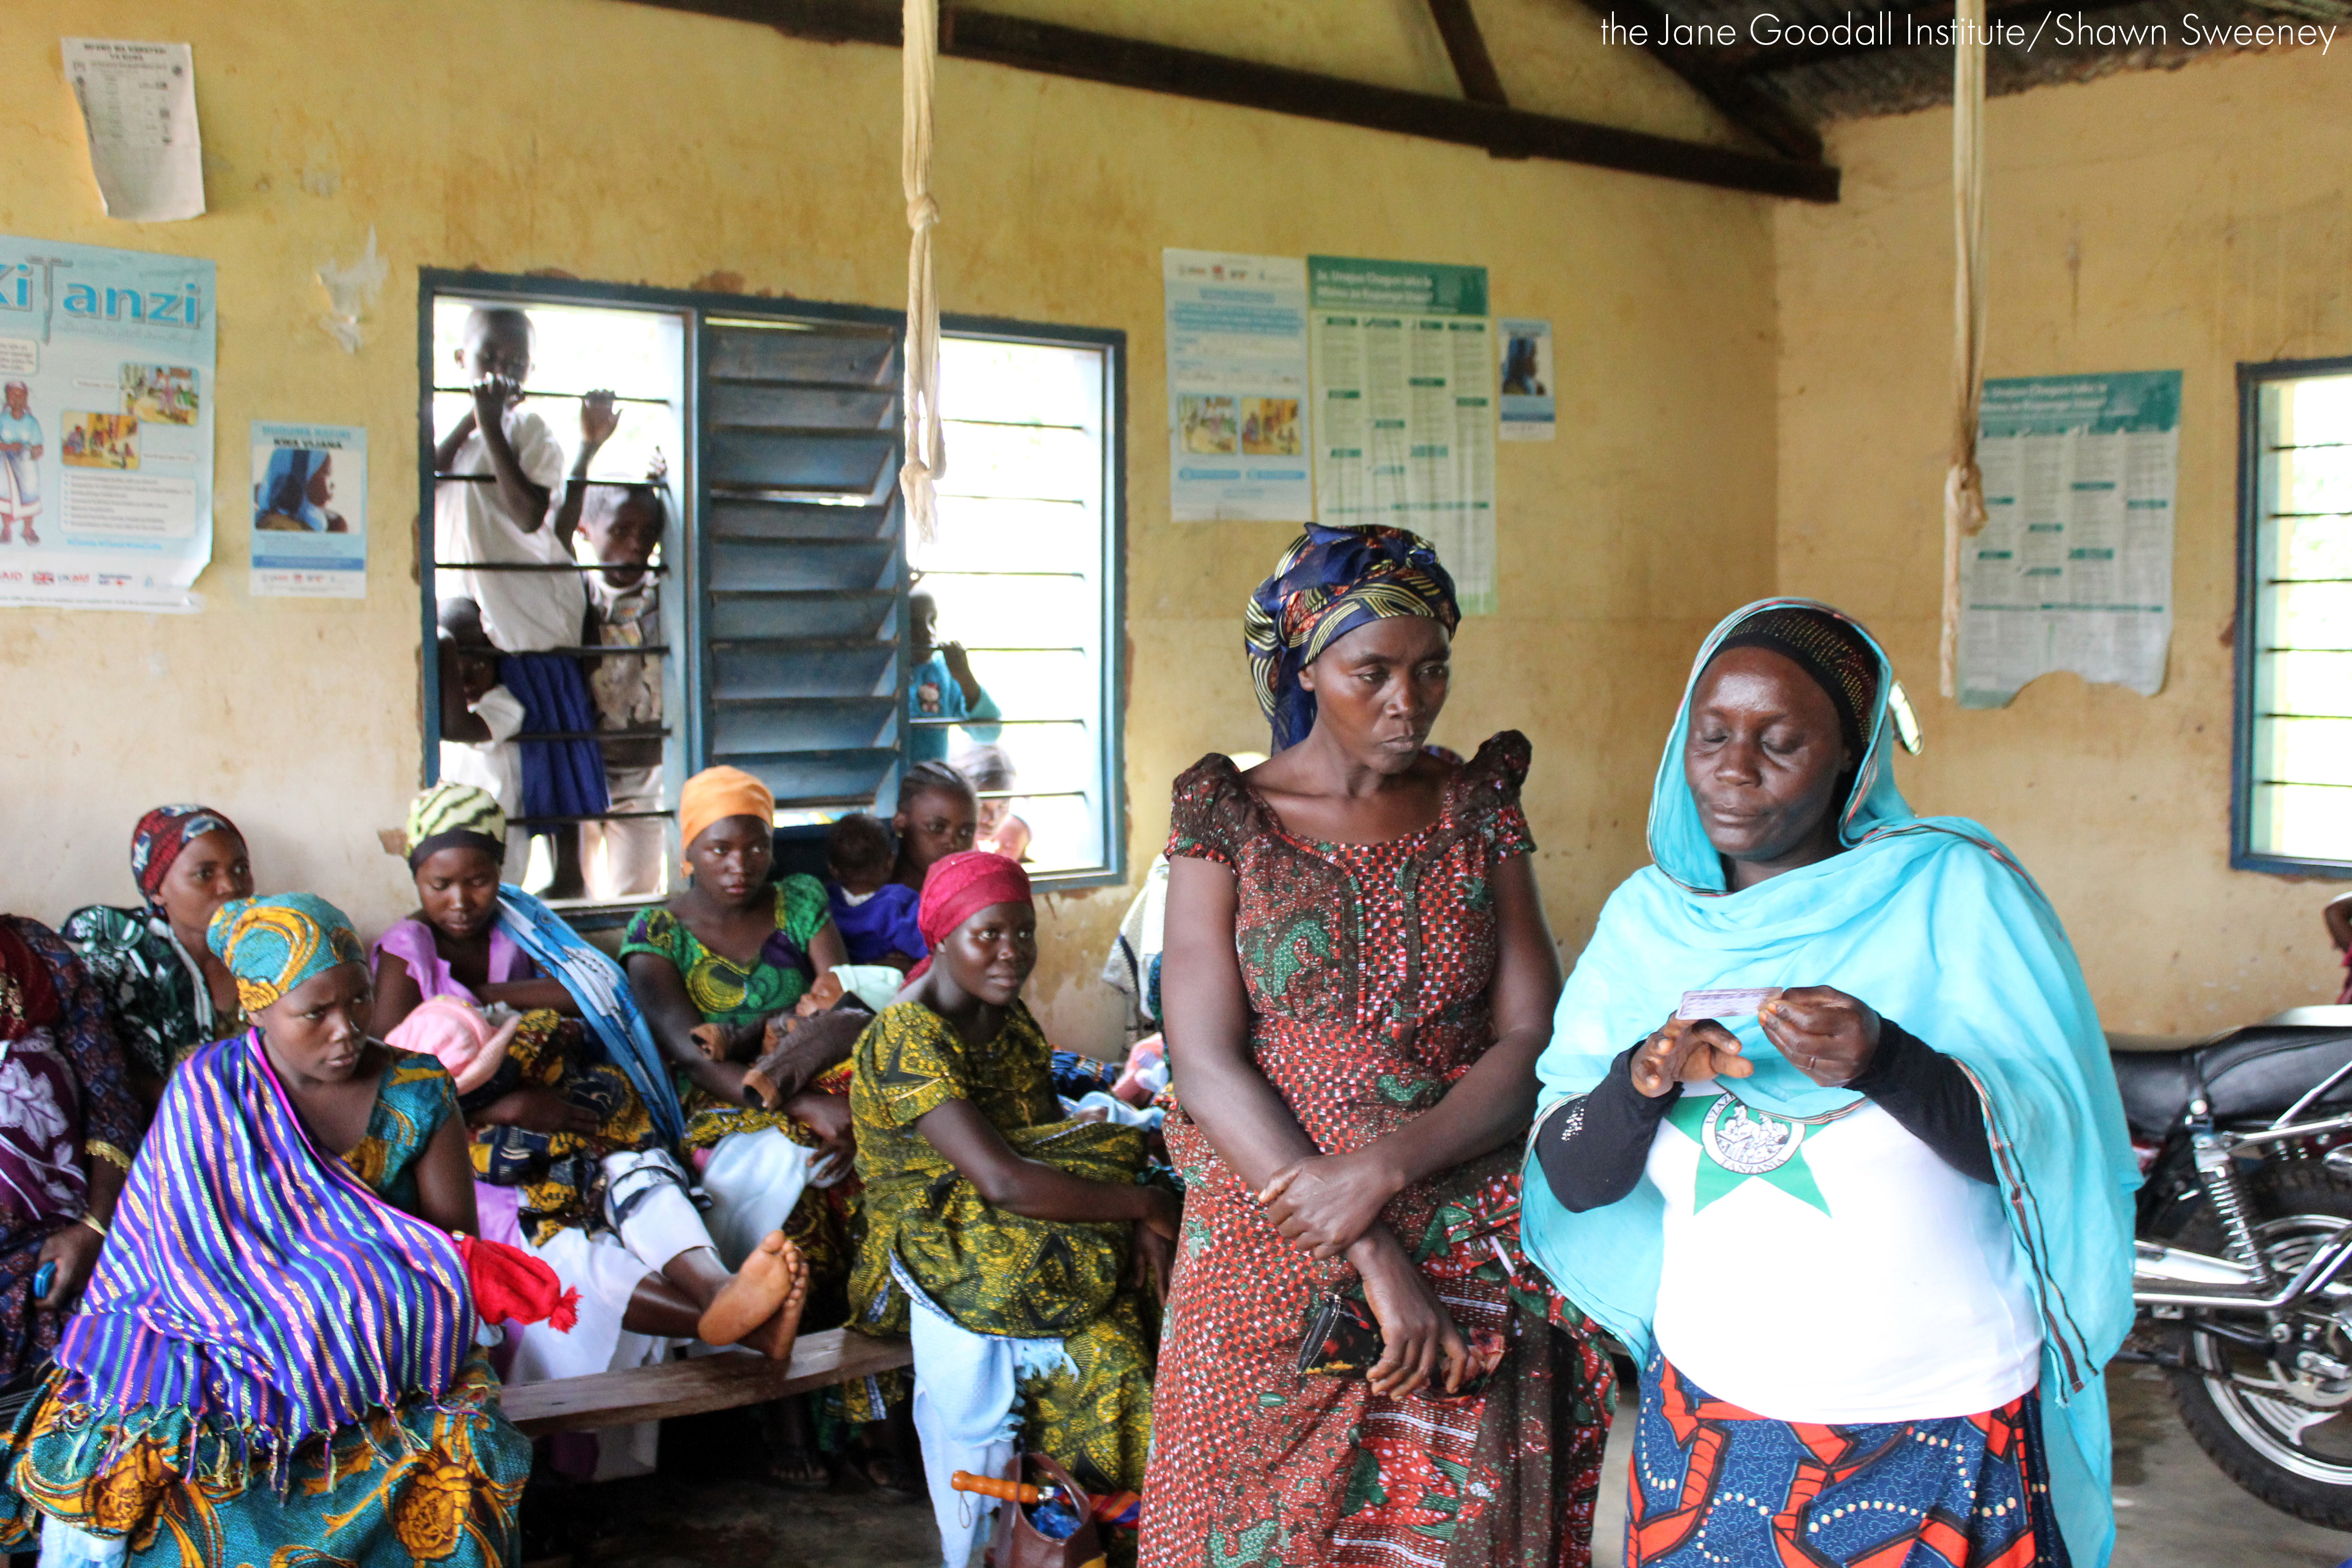 JGI TACARE health education program in Kalinzi Village